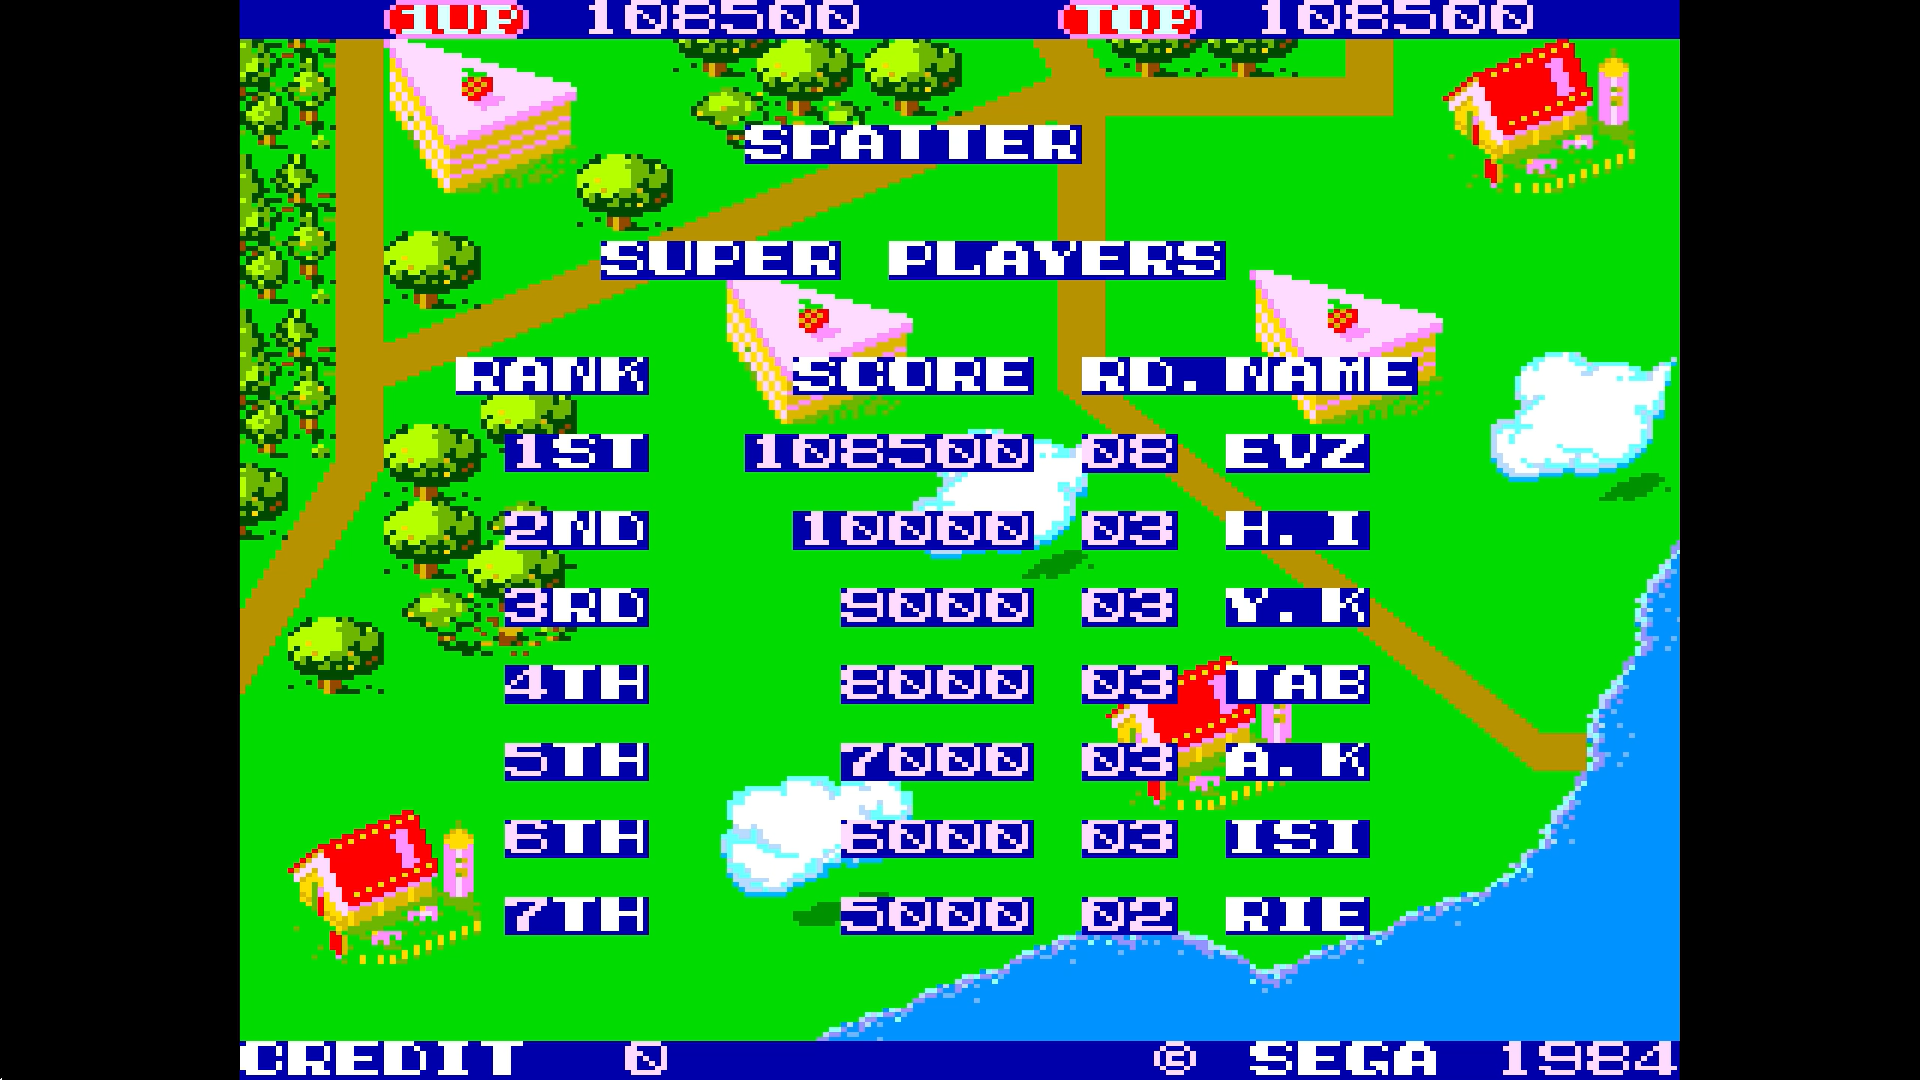 ministorm04: Spatter [spatter] (Arcade Emulated / M.A.M.E.) 108,500 points on 2019-02-21 05:29:28